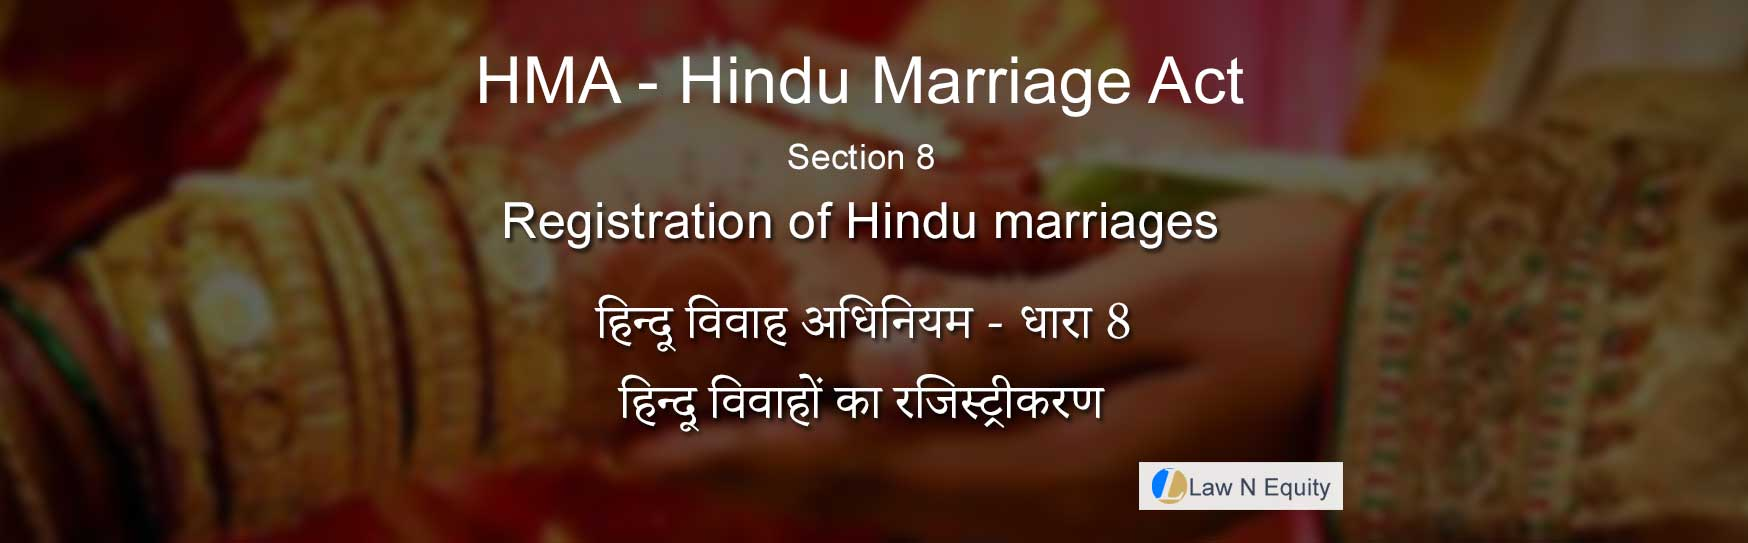 Hindu Marriage Act(HMA) Section 8